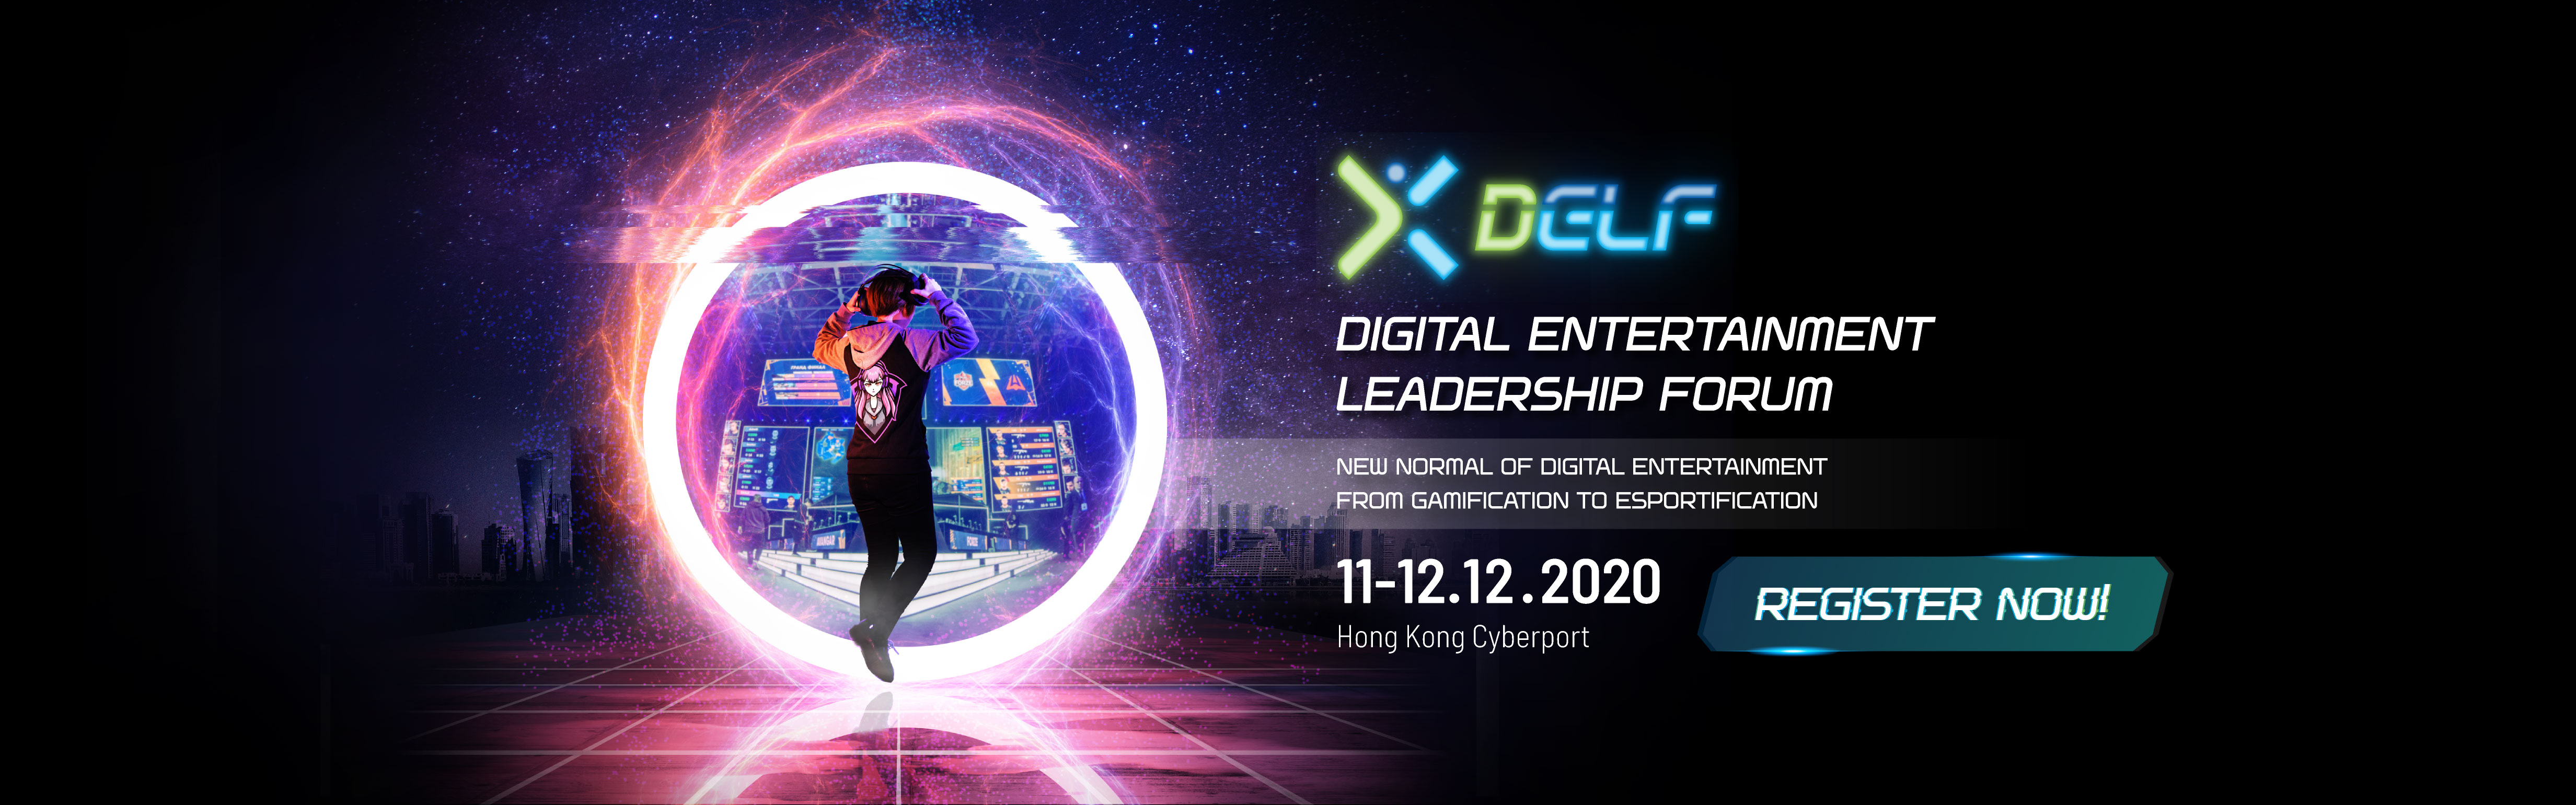 Digital Entertainment Leadership Forum 2020